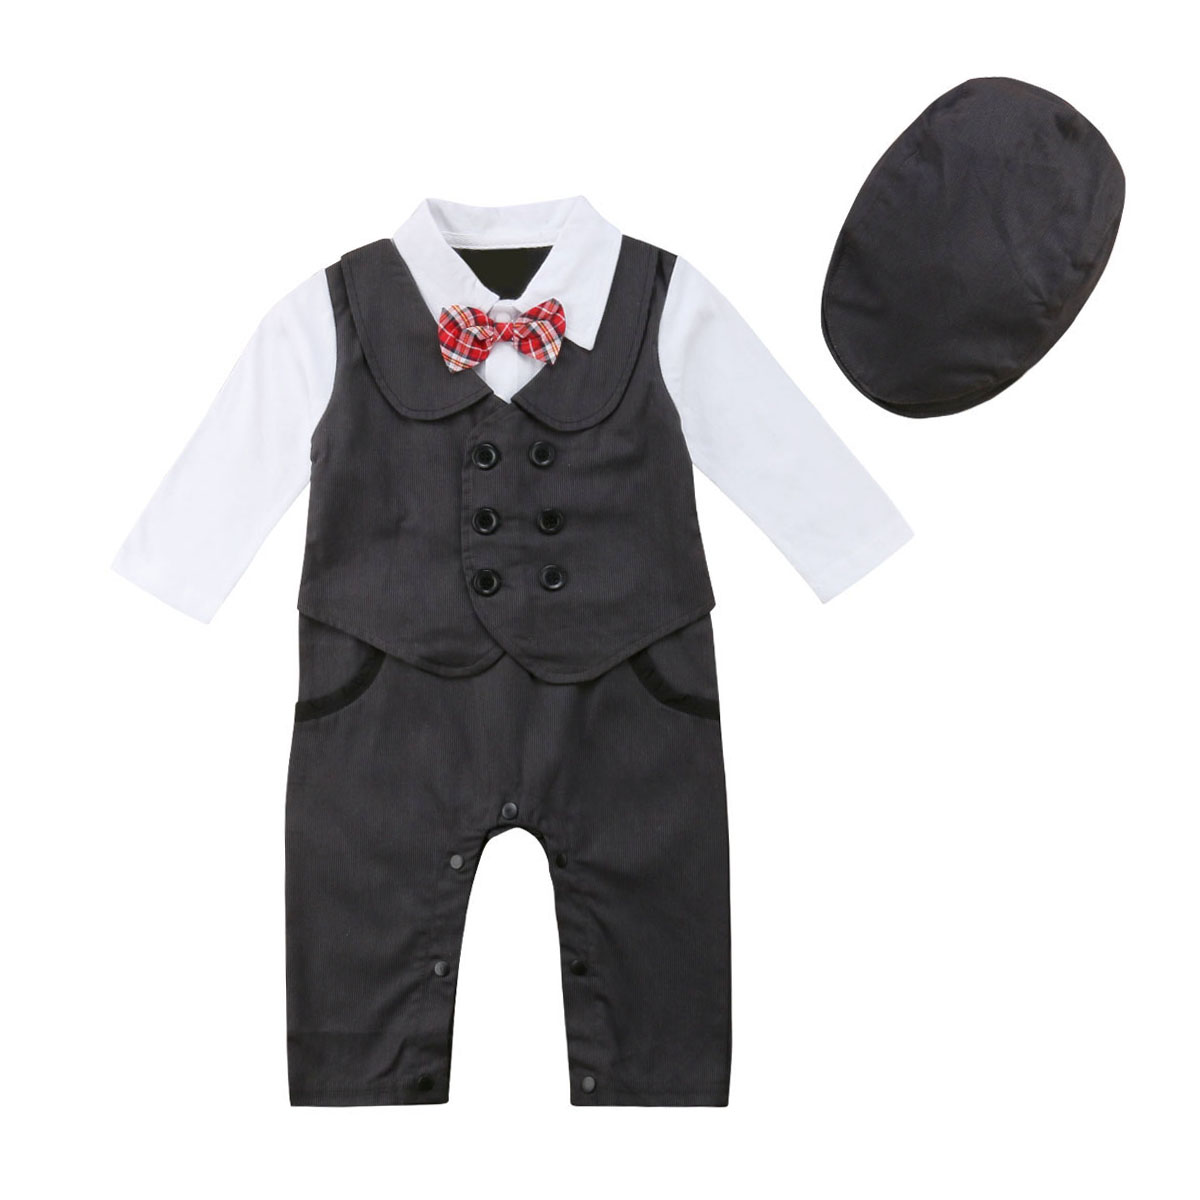 NEWBABY Tuxedo Printed With Bow Tie Toddler Long Sleeves Romper Bodysuit For 6-24m Baby